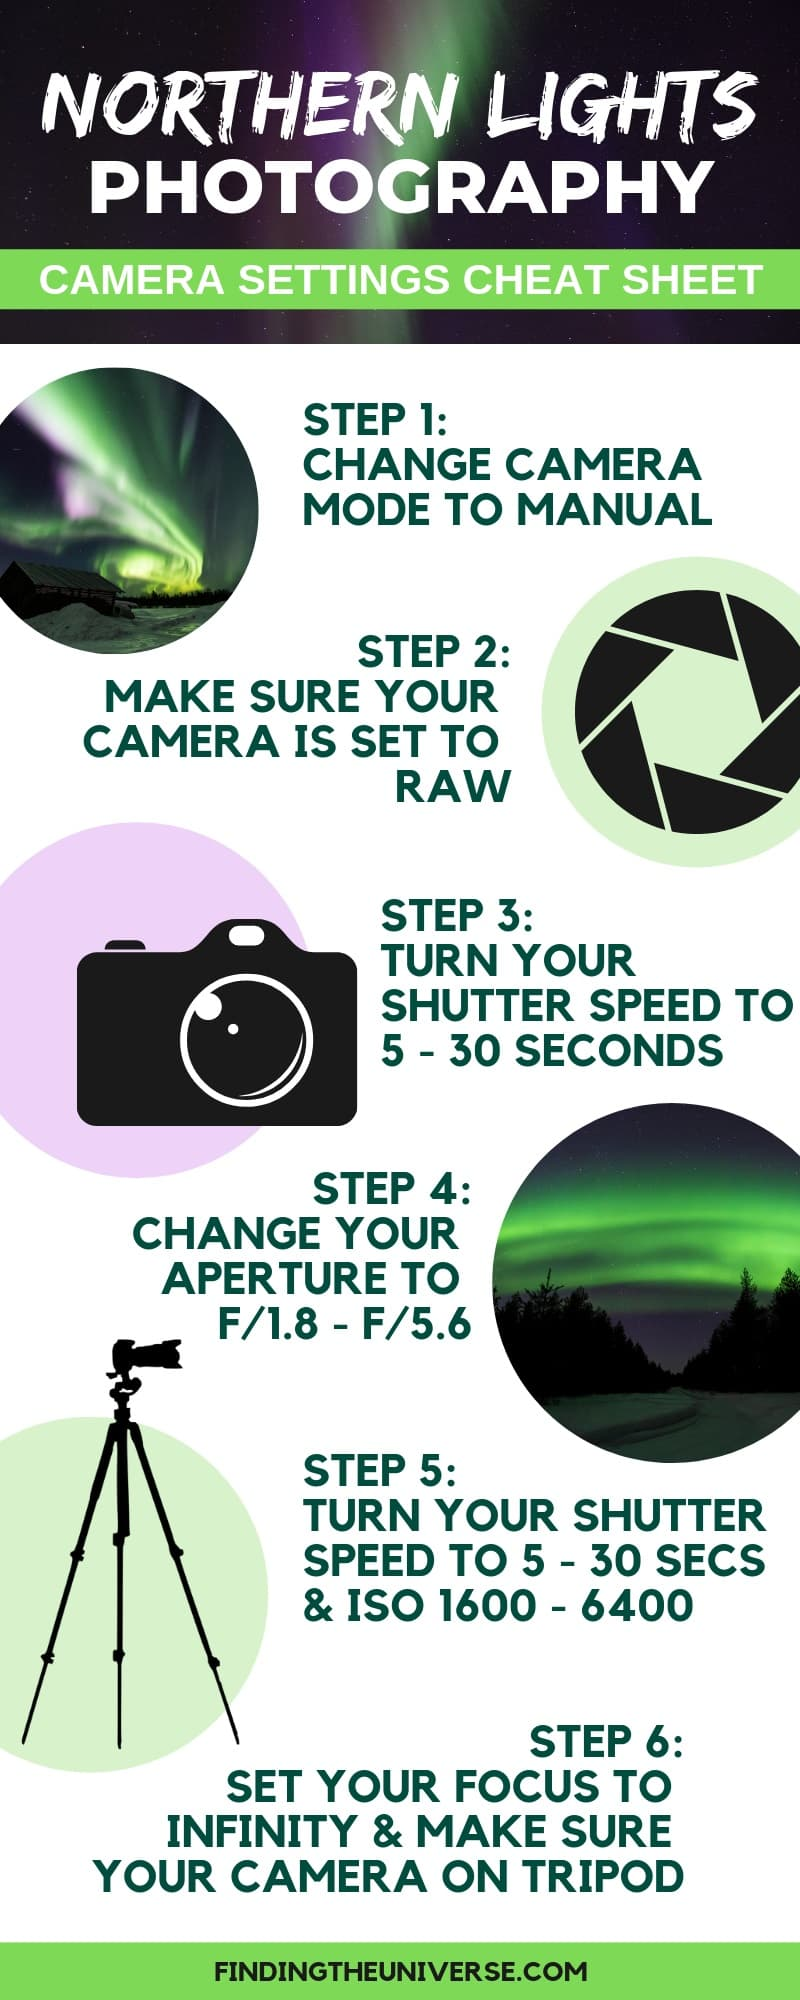 Northern Lights Photography checklist